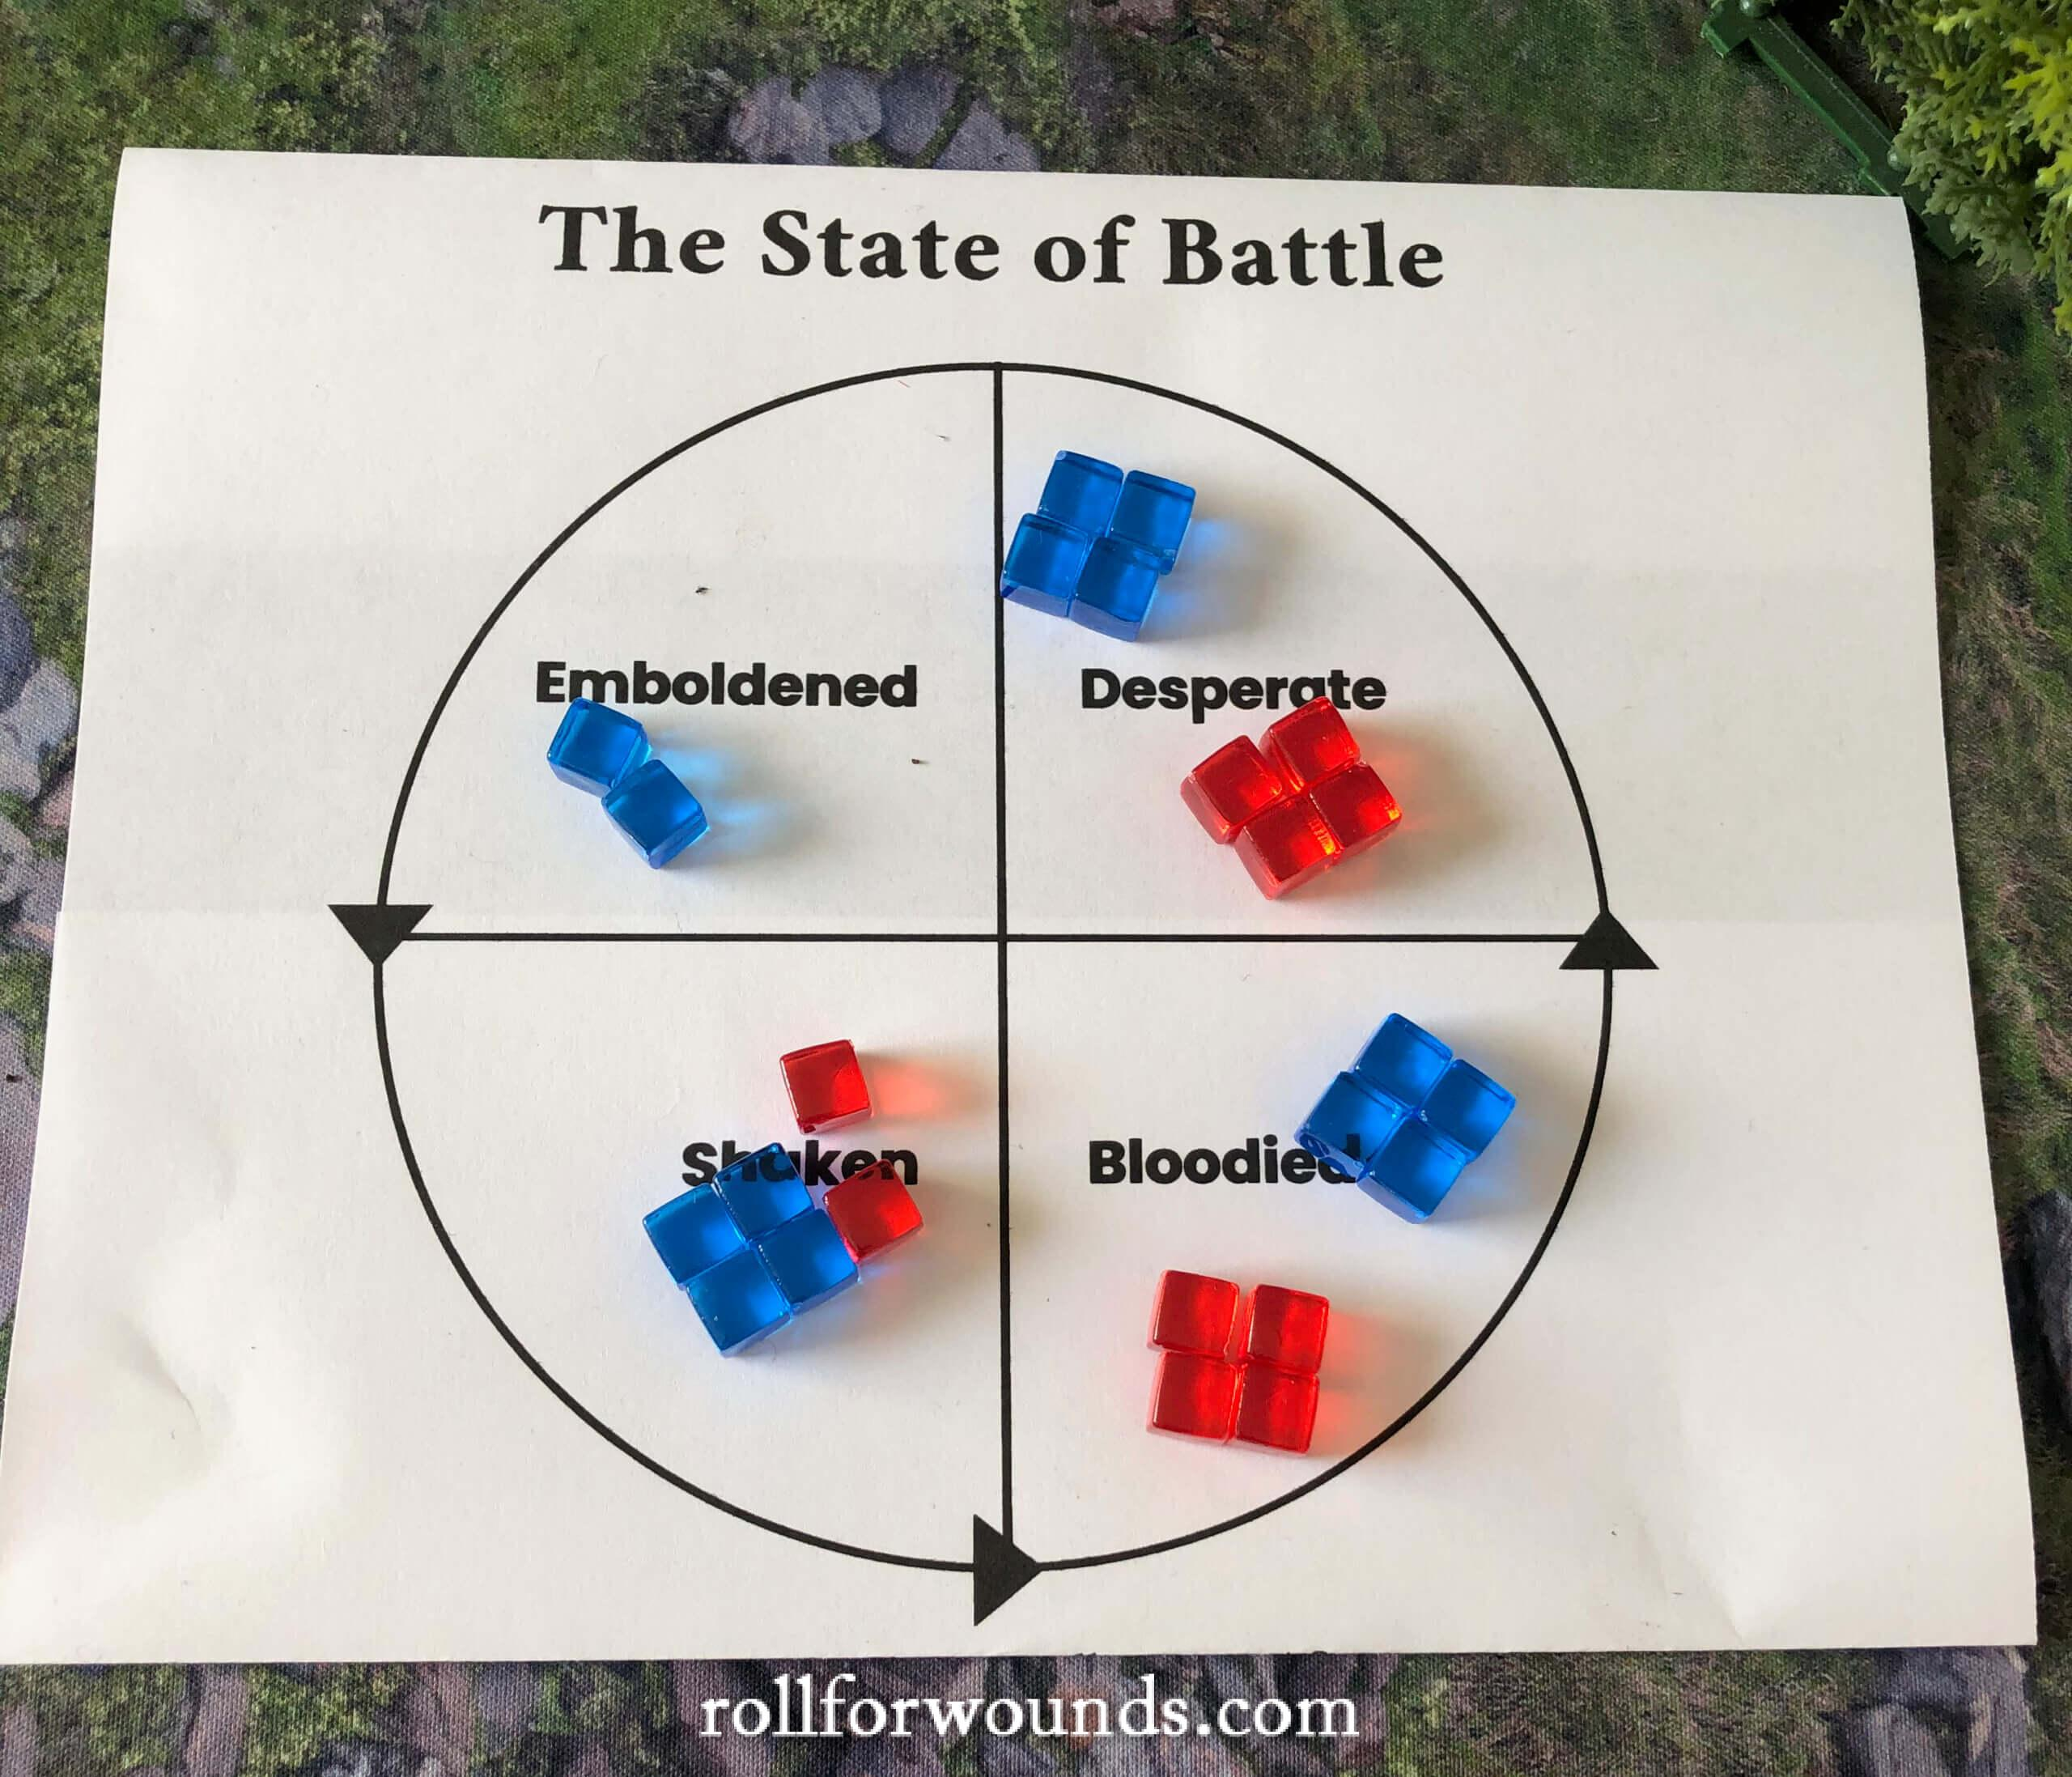 States of Battle diagram with Morale Counters